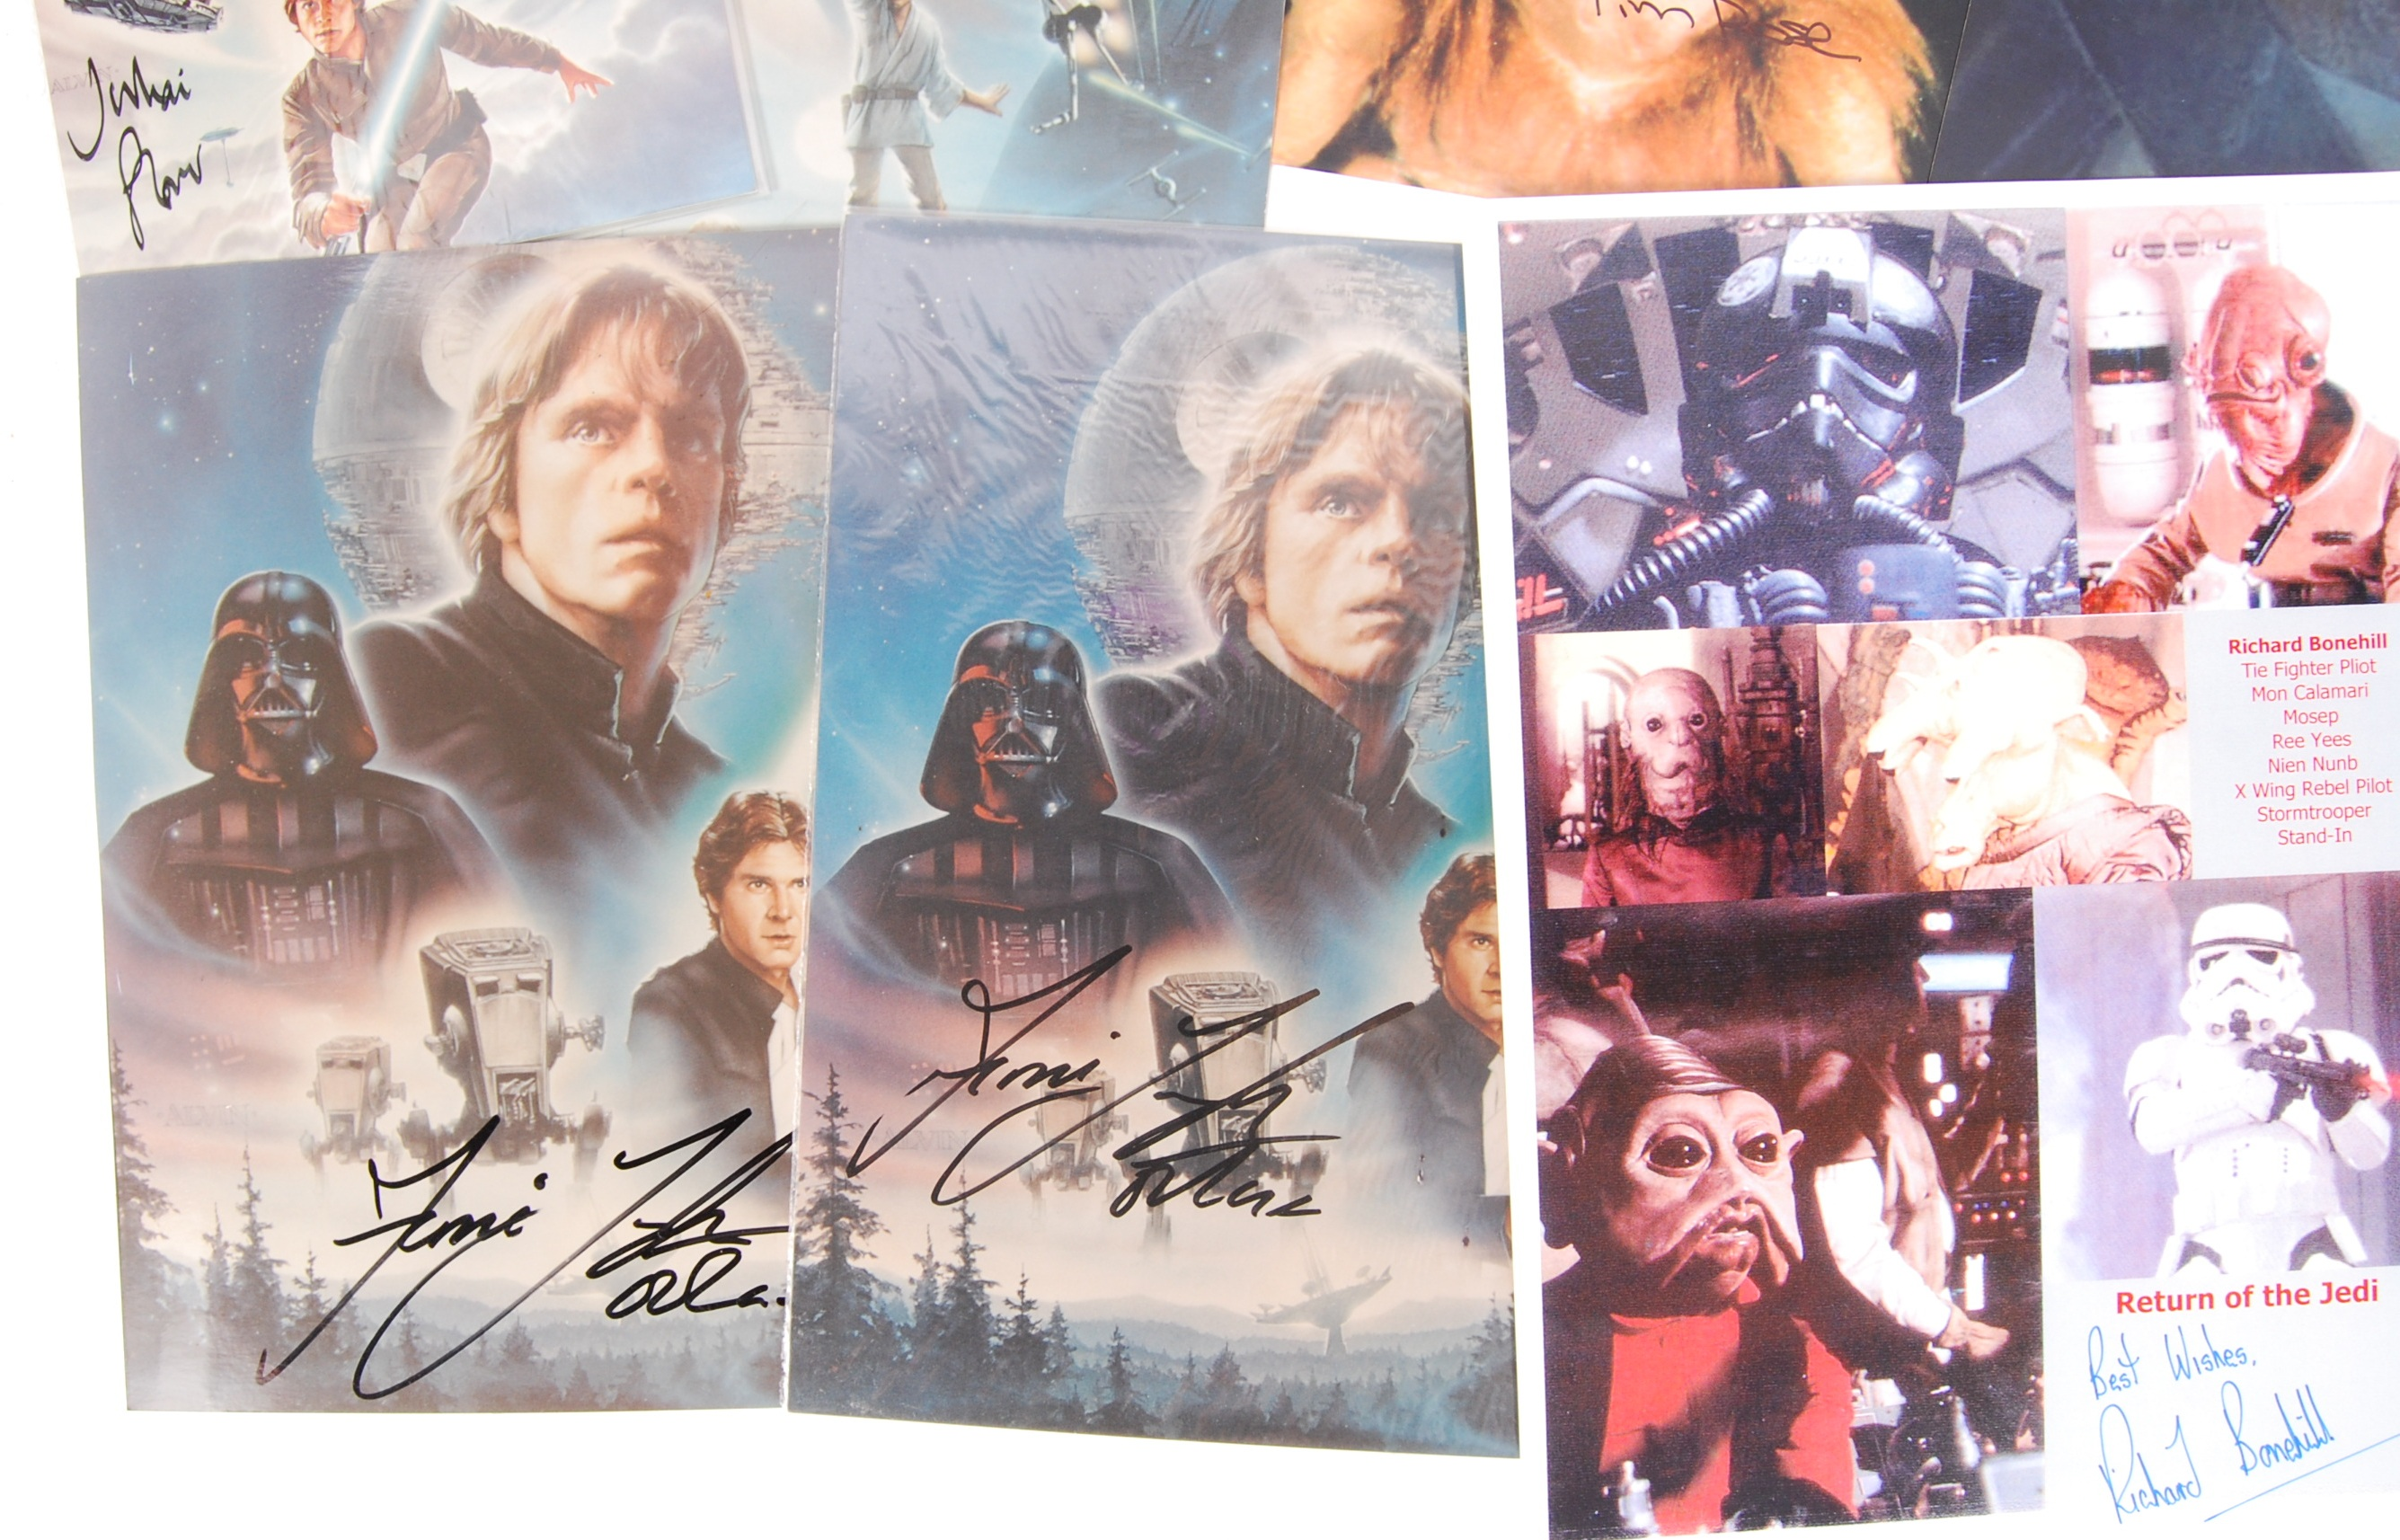 STAR WARS - SELECTION OF AUTOGRAPHED PHOTOGRAPHS - Image 4 of 4